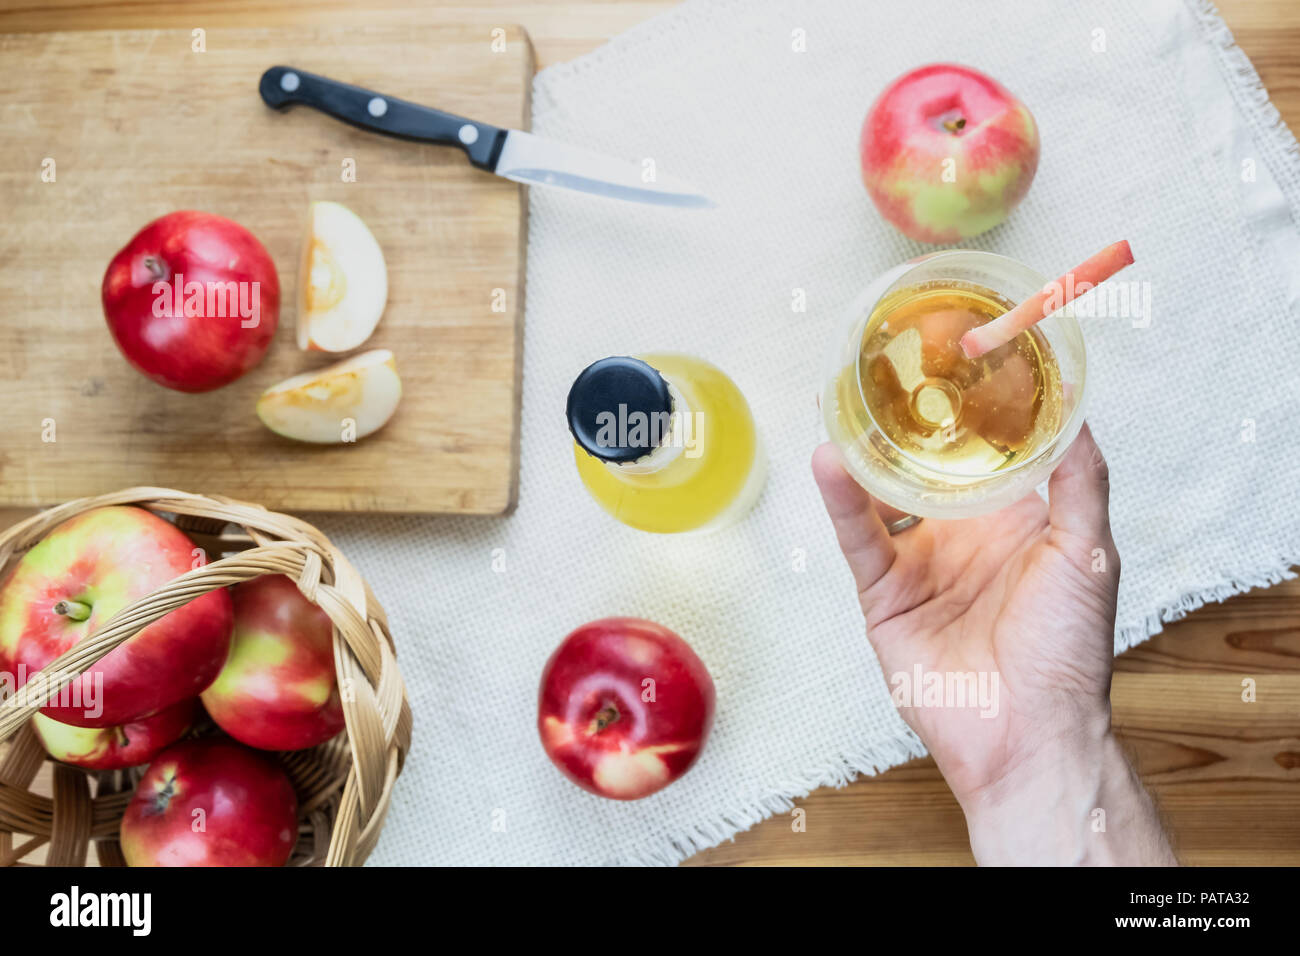 Top view of ripe juicy apples and glass of cidre drink on rustic wooden table. Point of view of hand holding glass of home made cider and locally grow - Stock Image